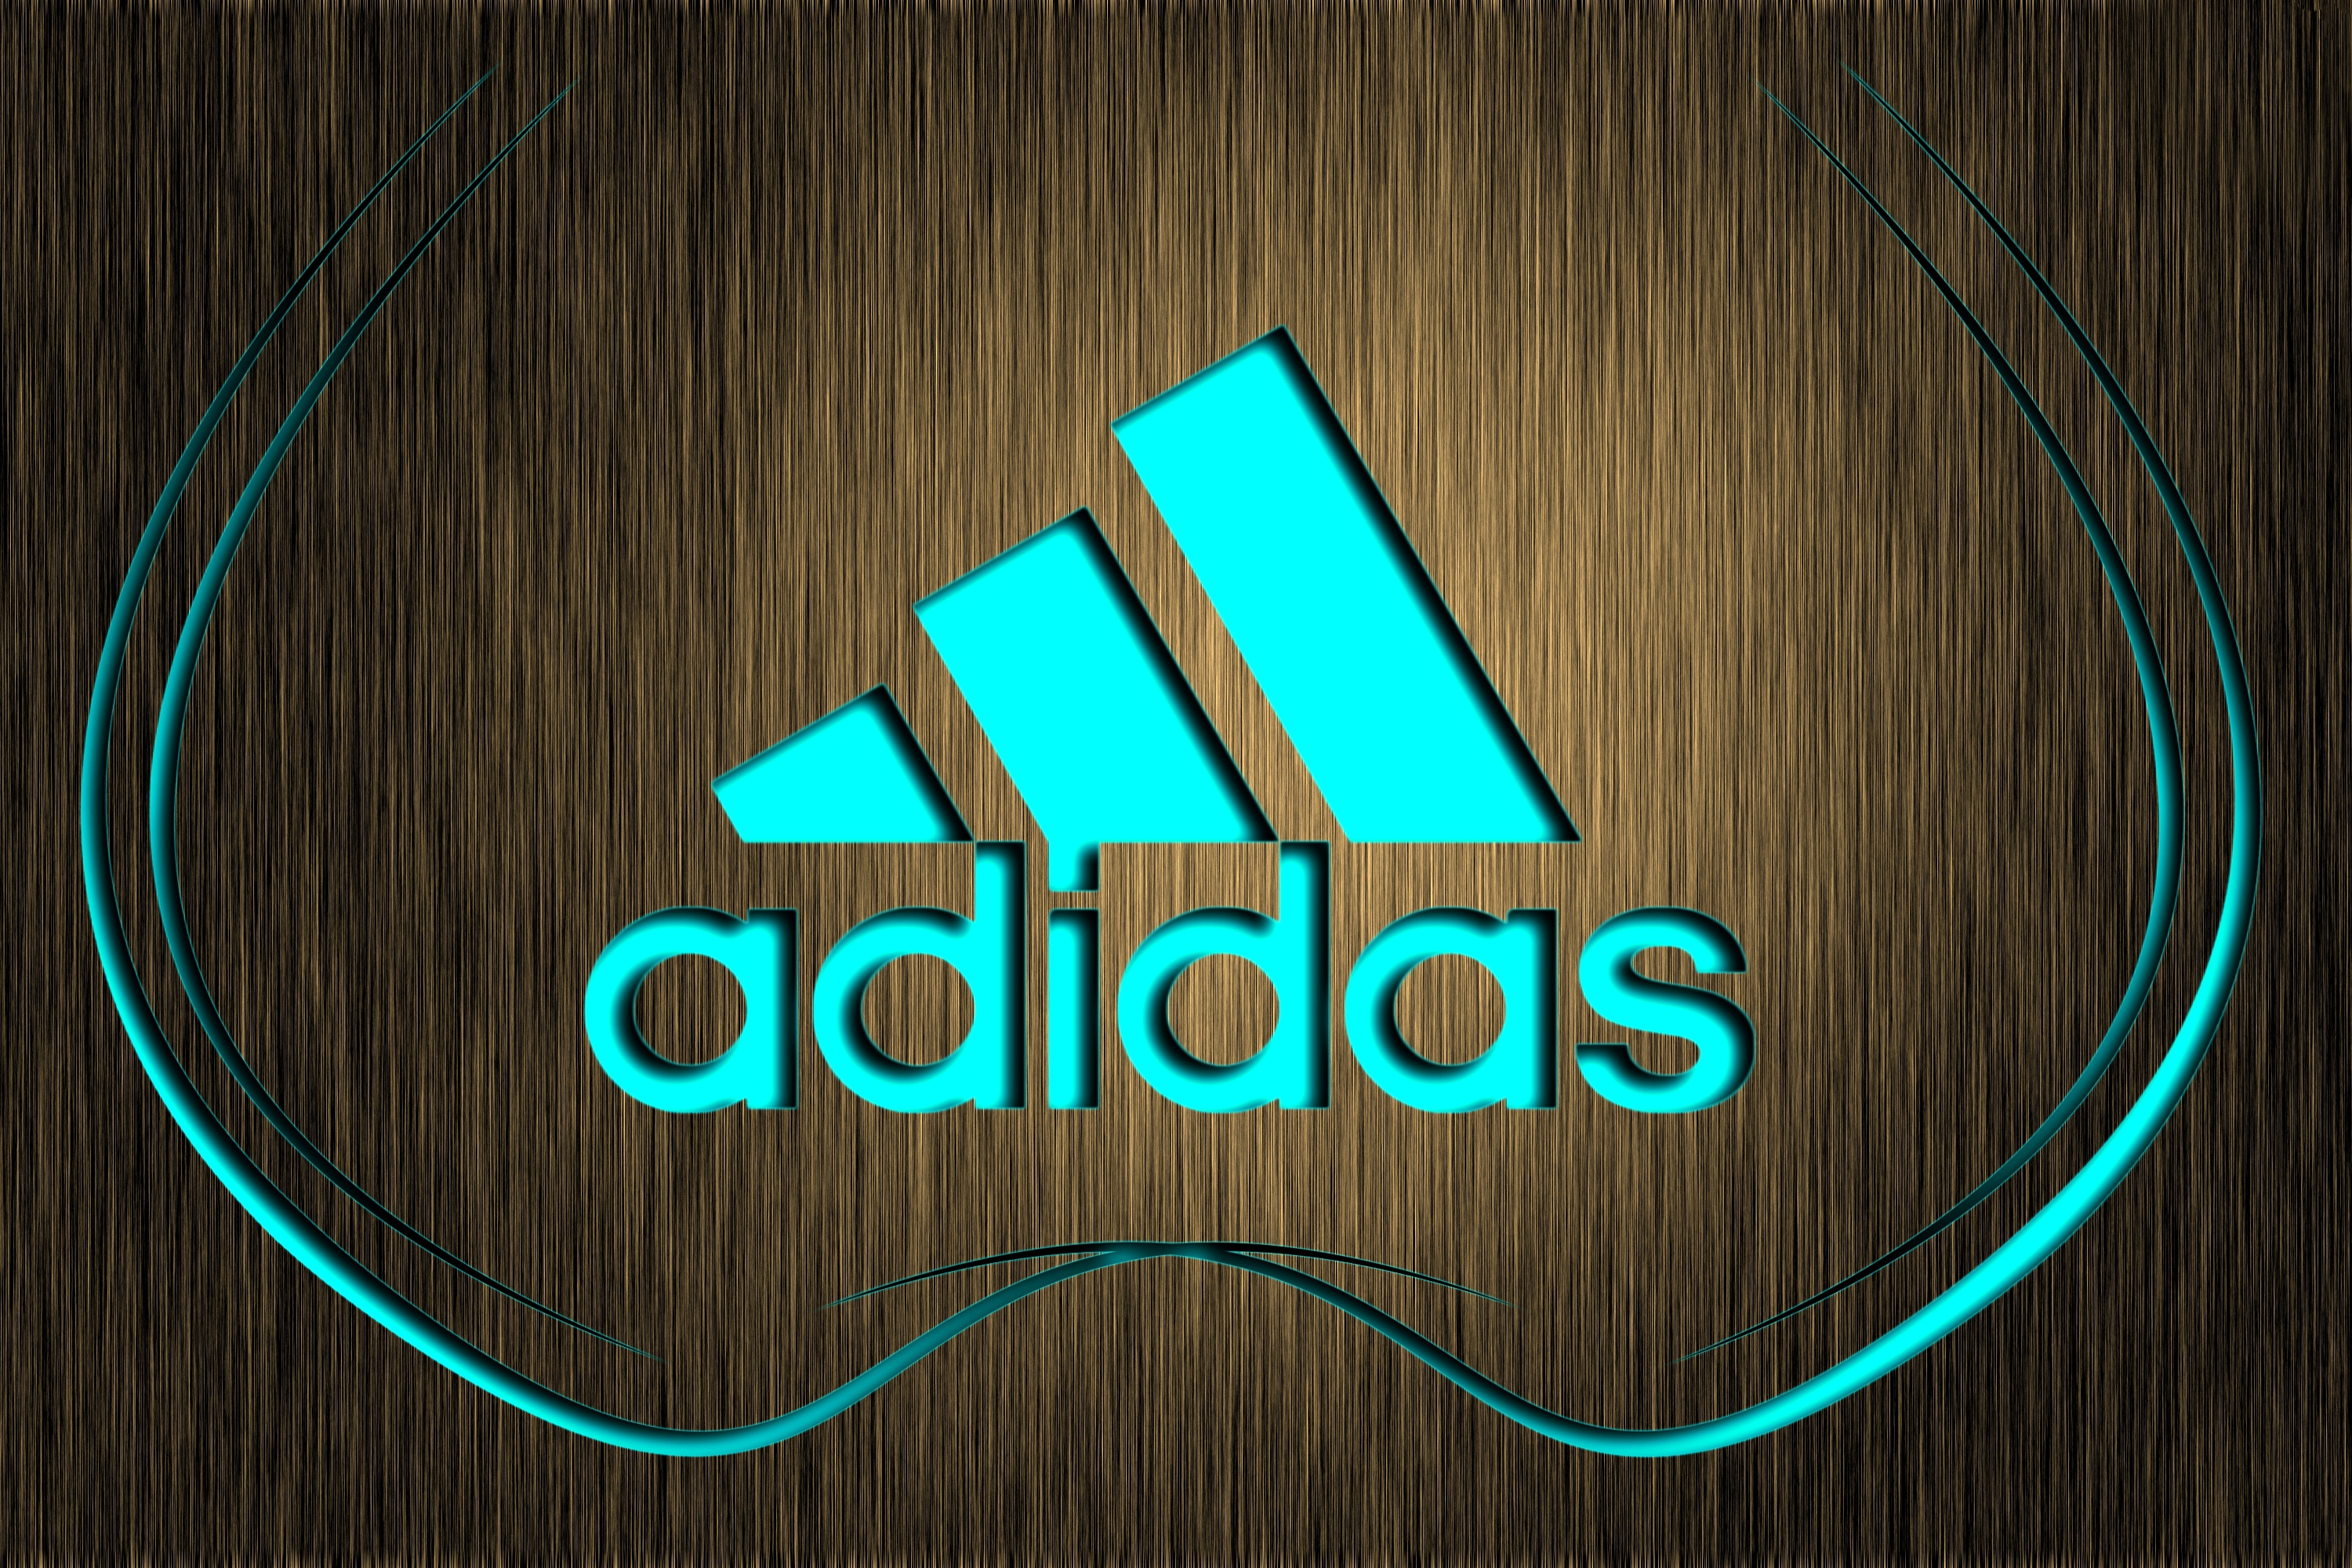 Adidas Wallpapers High Quality Download Free